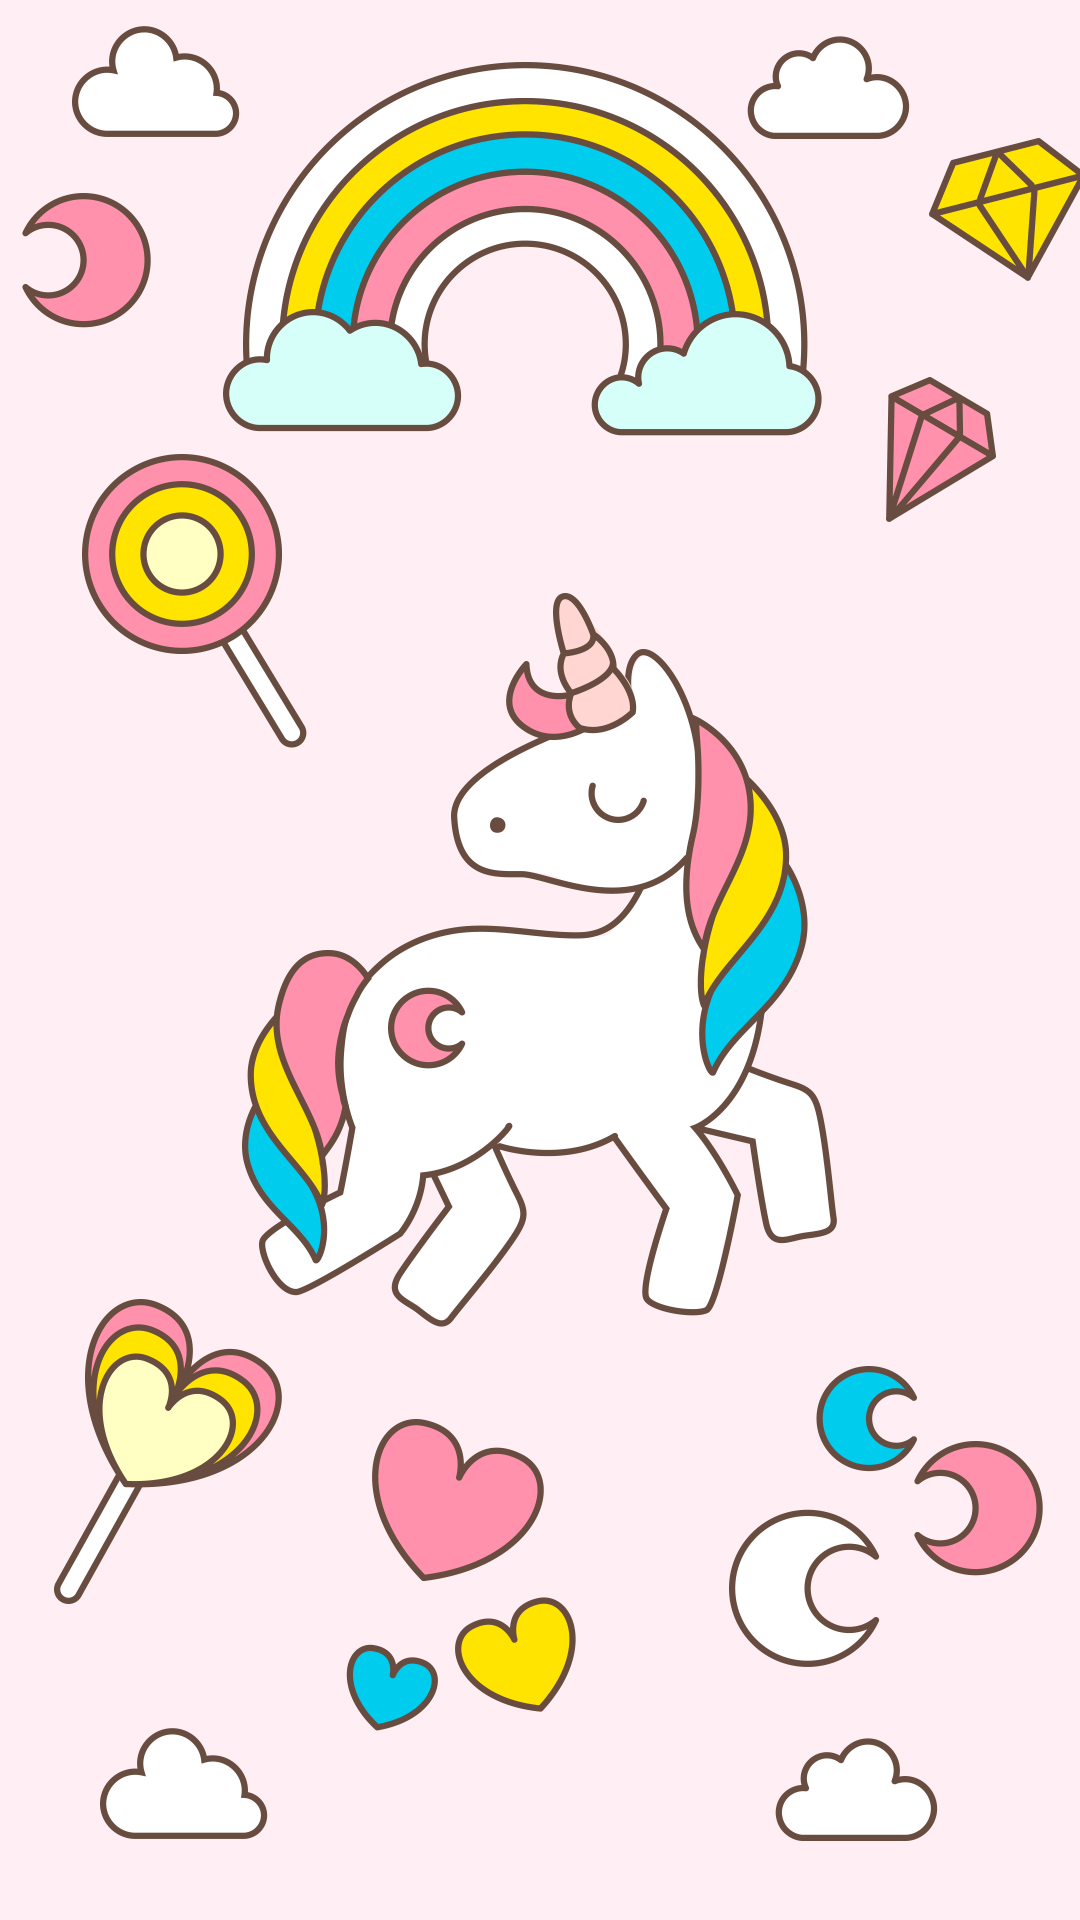 1080x1920 Free Hd Cute Unicorn Iphone Wallpaper For Download 0070 Unicorn Wallpaper Unicorn Backgrounds Cute Wallpapers